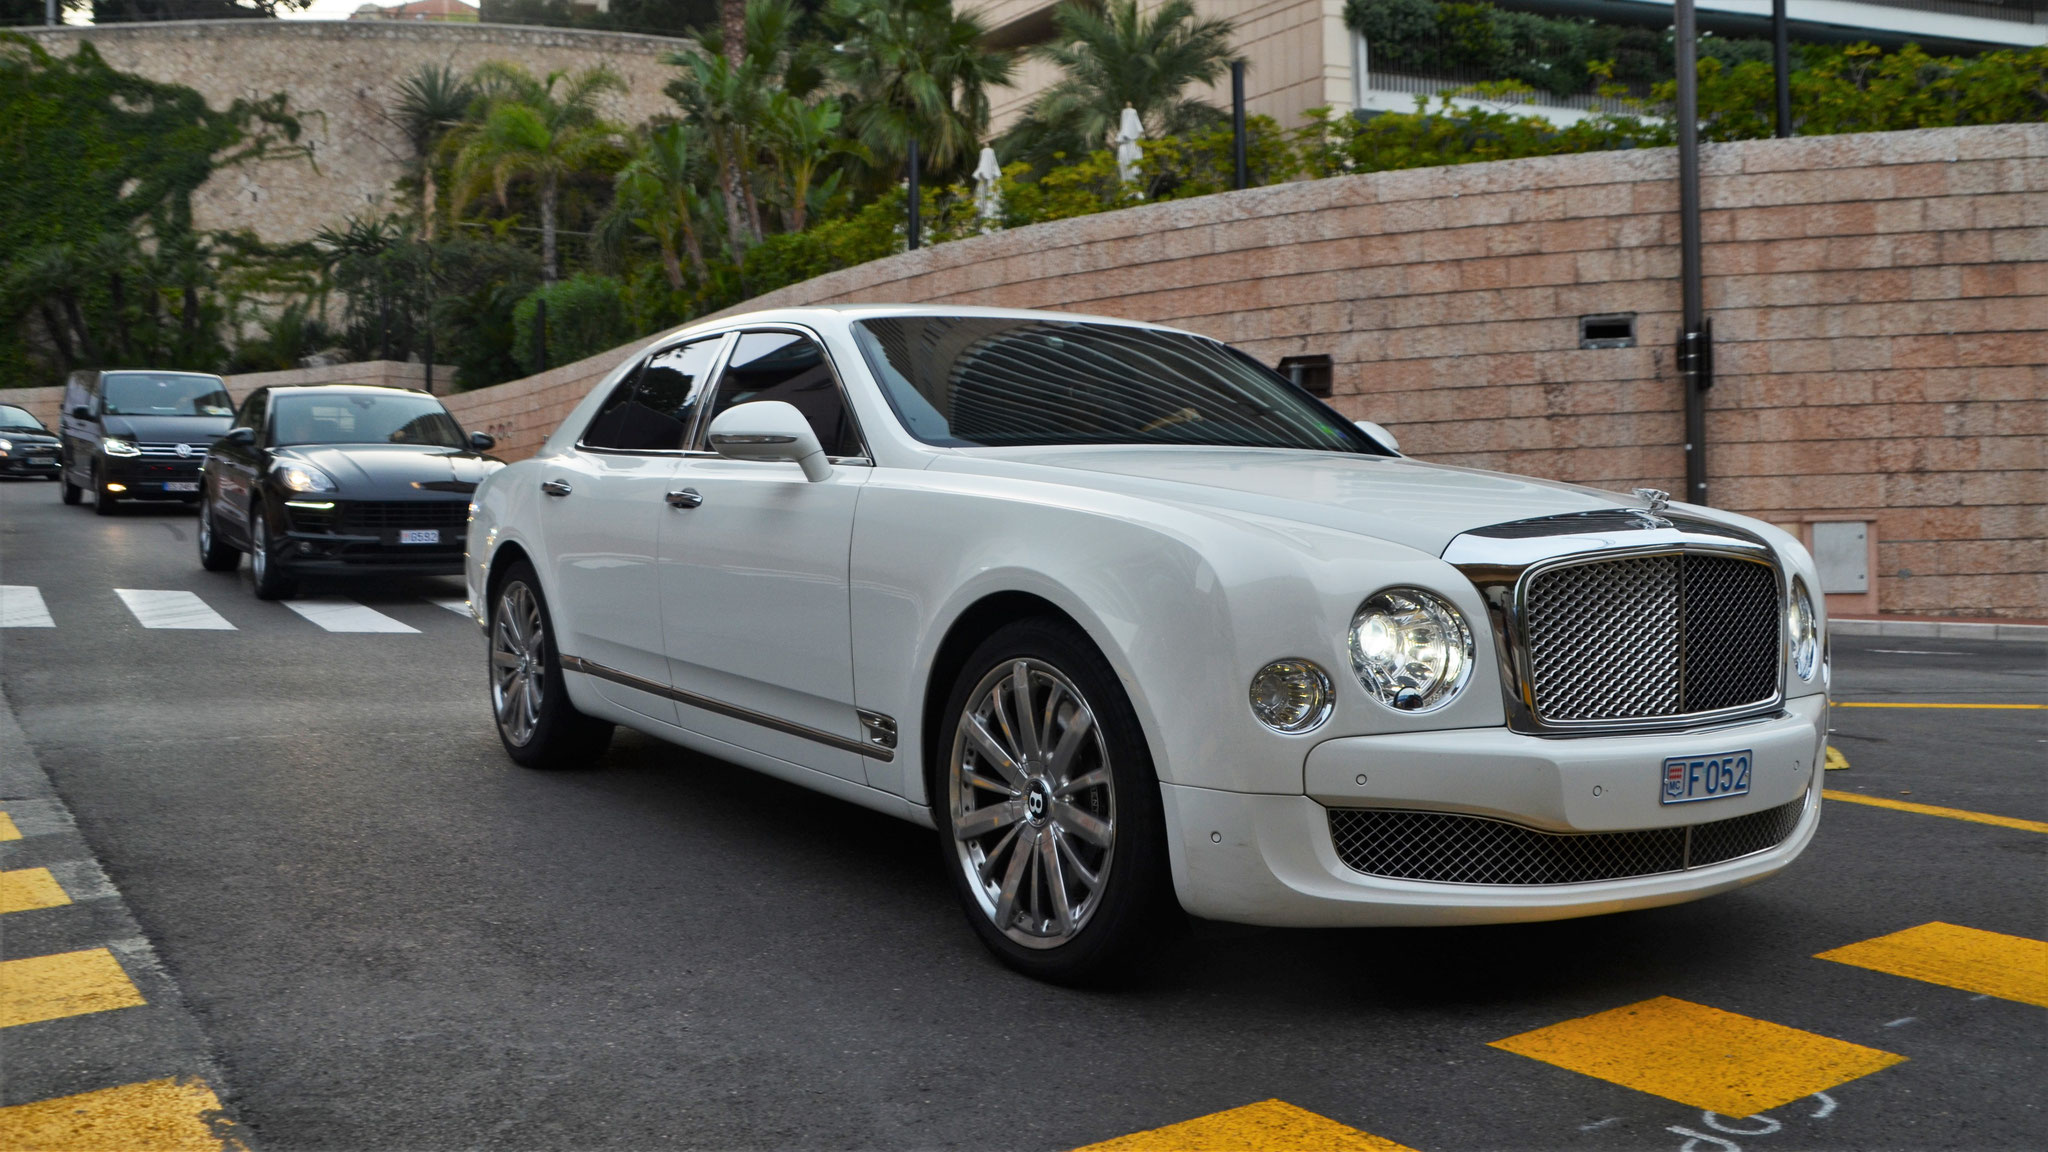 Bentley Mulsanne - F052 (MC)